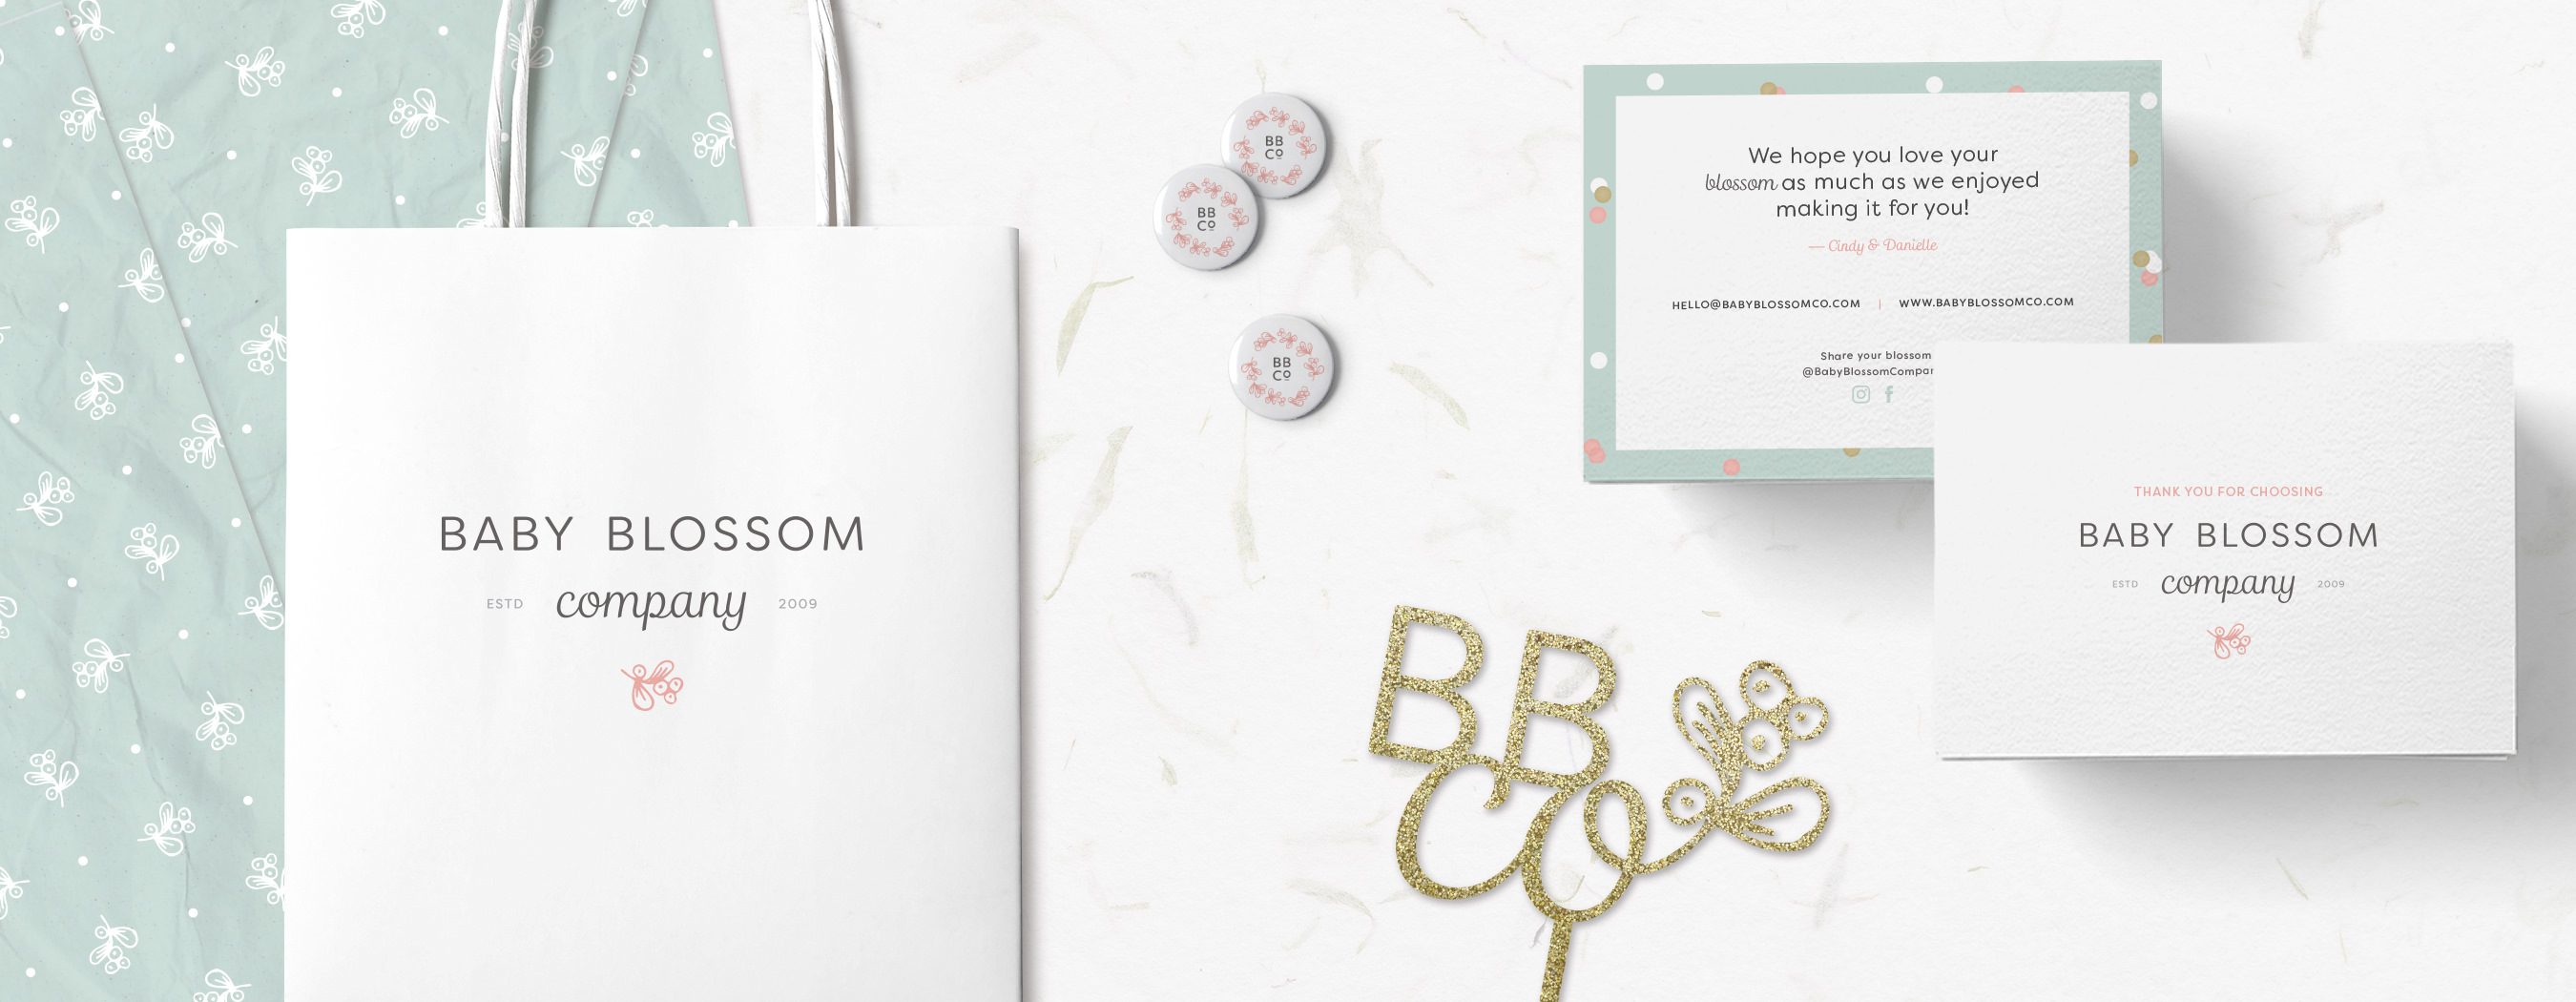 Baby Blossom Company branding by The Curio Collective